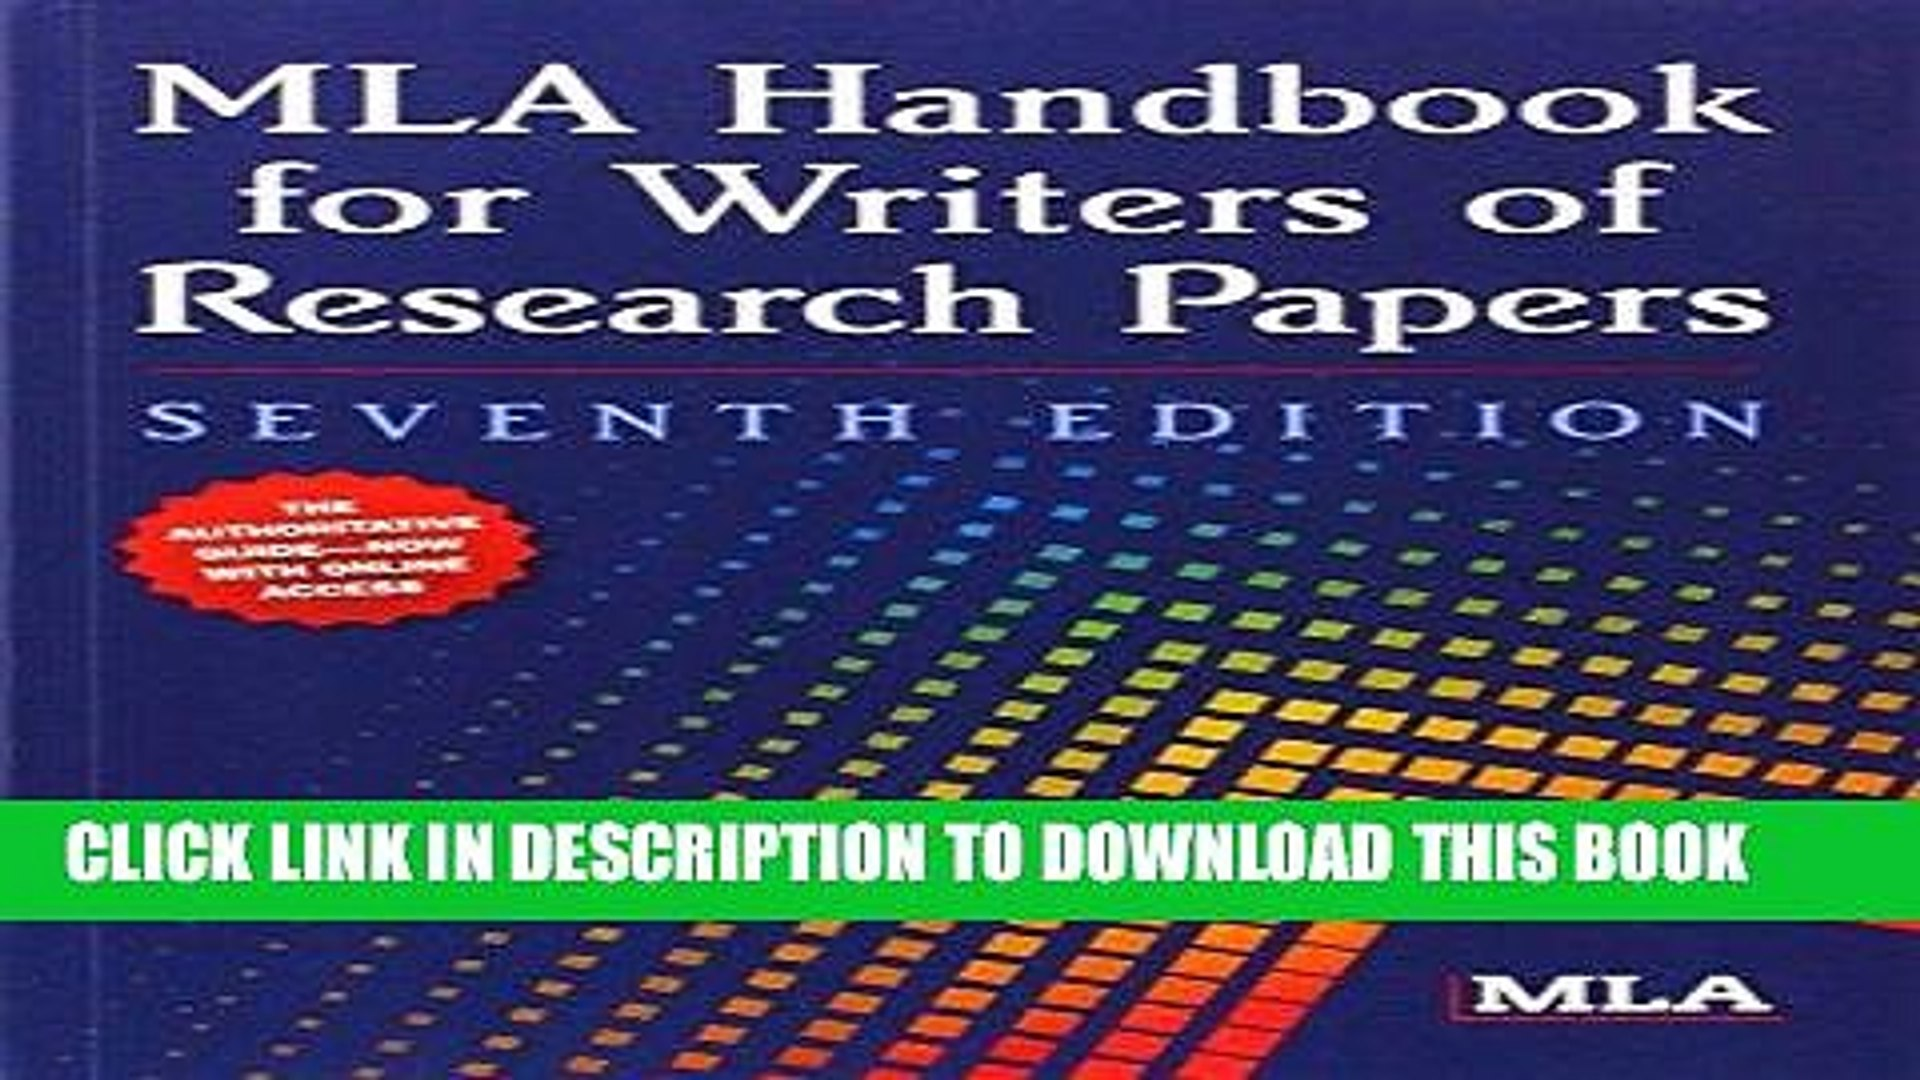 002 Mla Handbook For Writers Of Research Papers 7th Edition Pdf Download Paper X1080 F3  Fearsome FreeFull